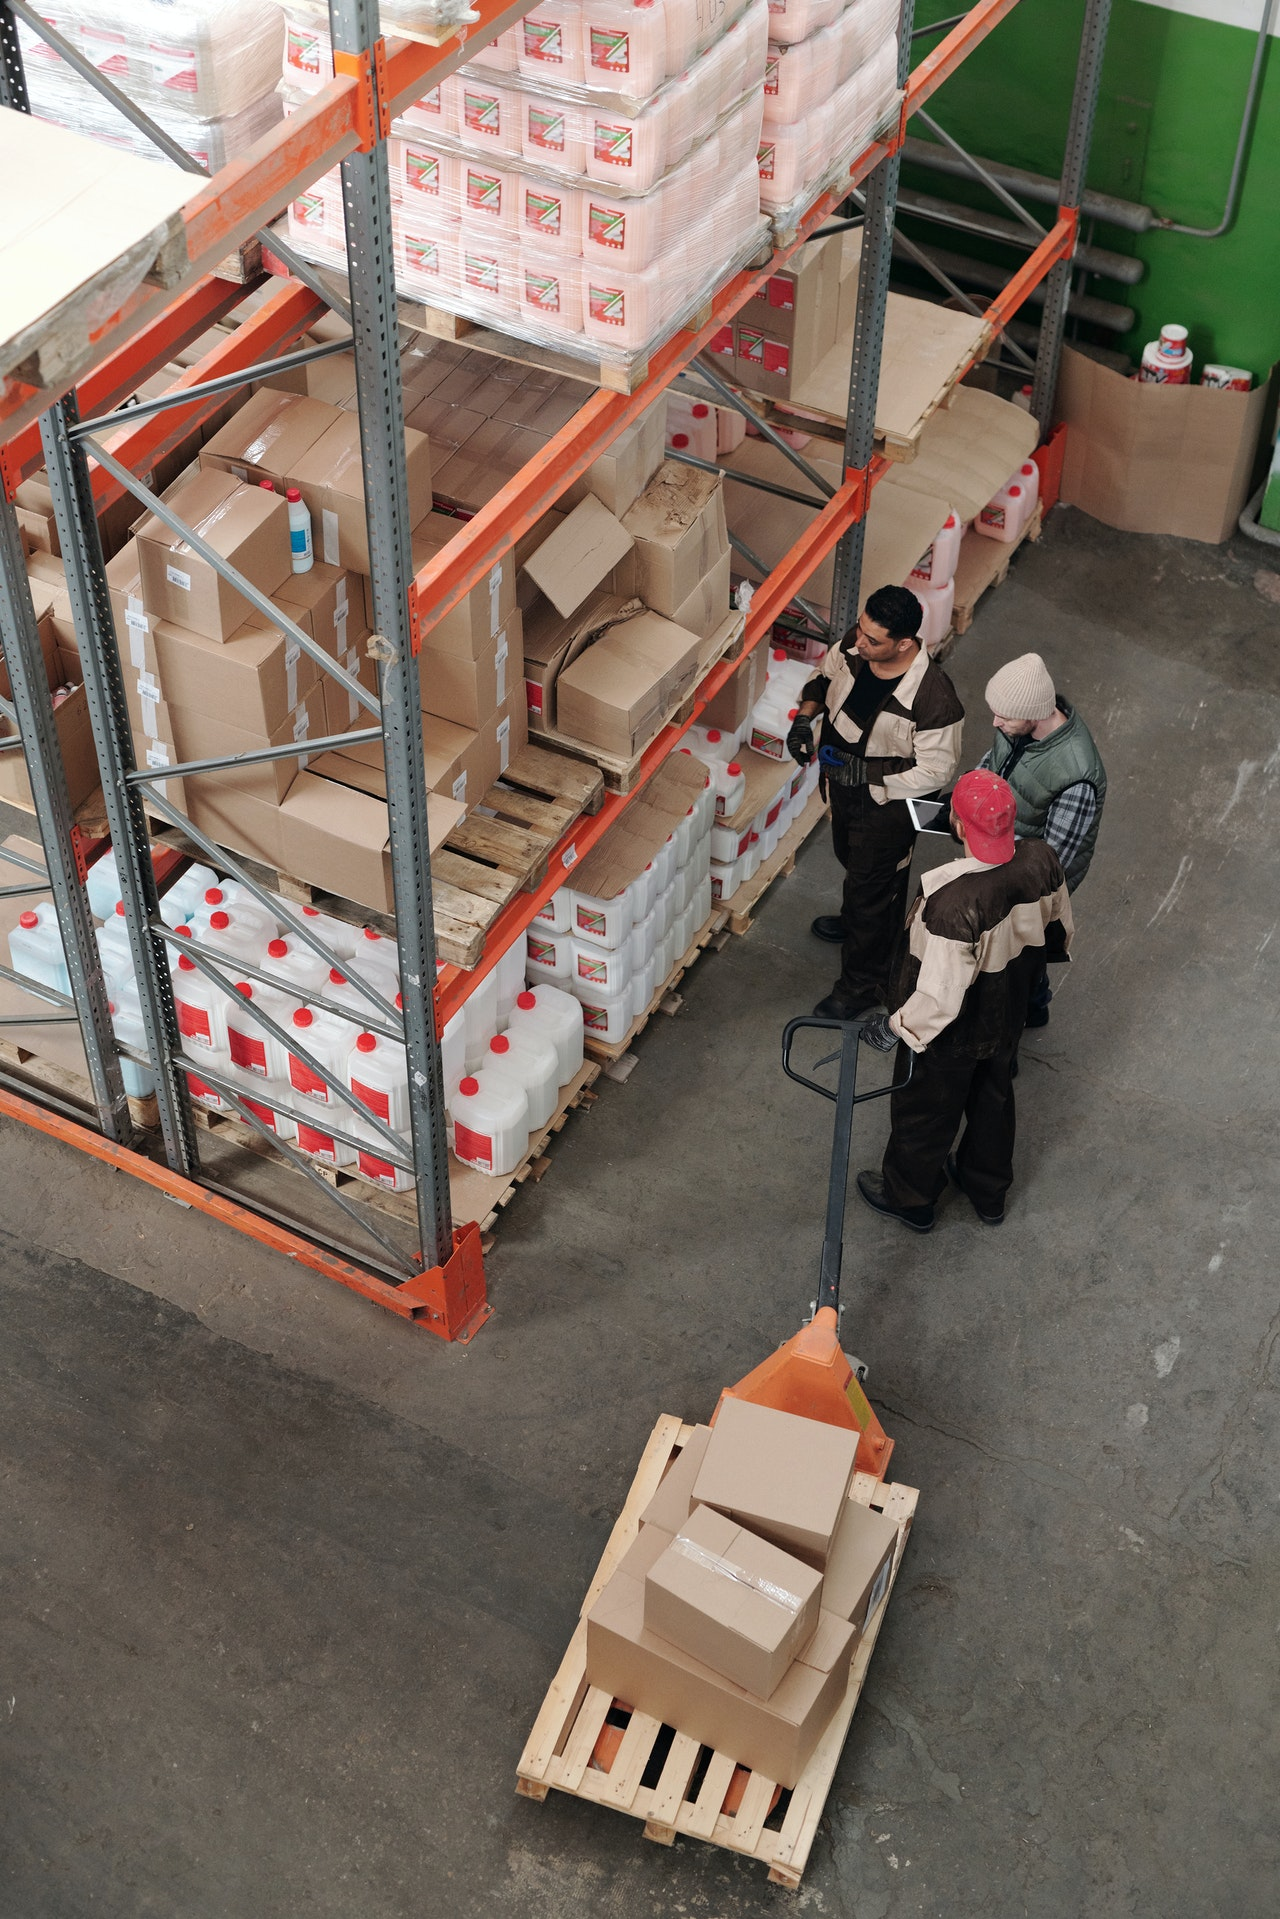 three employees talking inside a warehouse and one holding a dolly